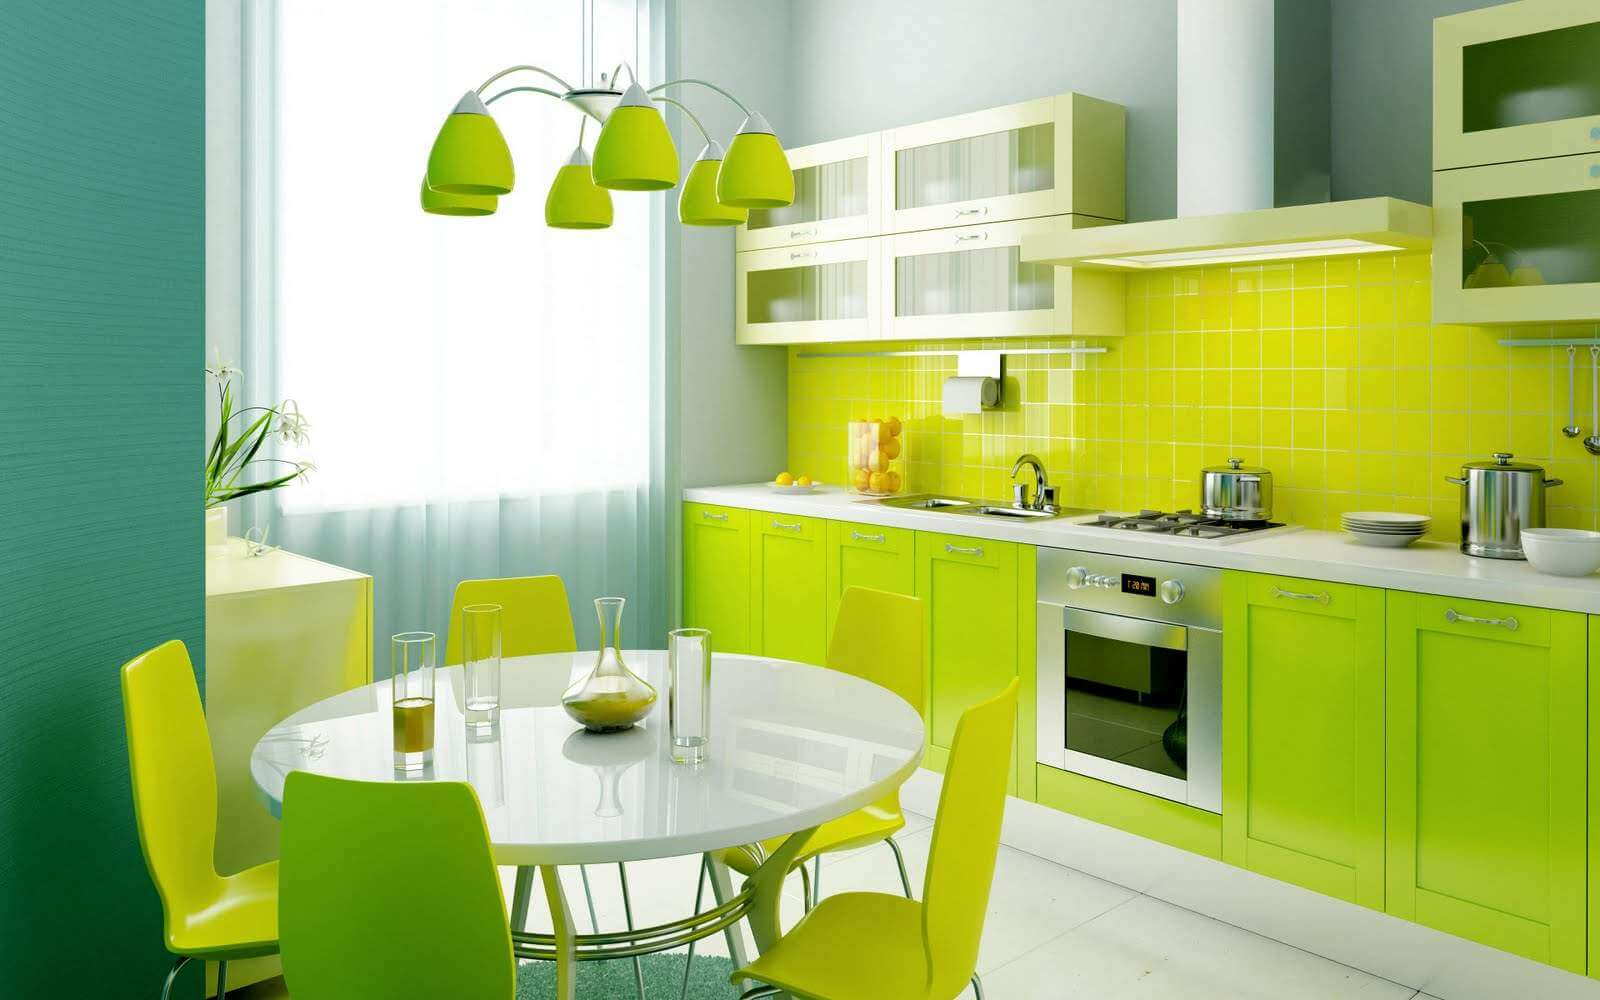 Best Interior Designers in Shankar Nagar, Bangalore.